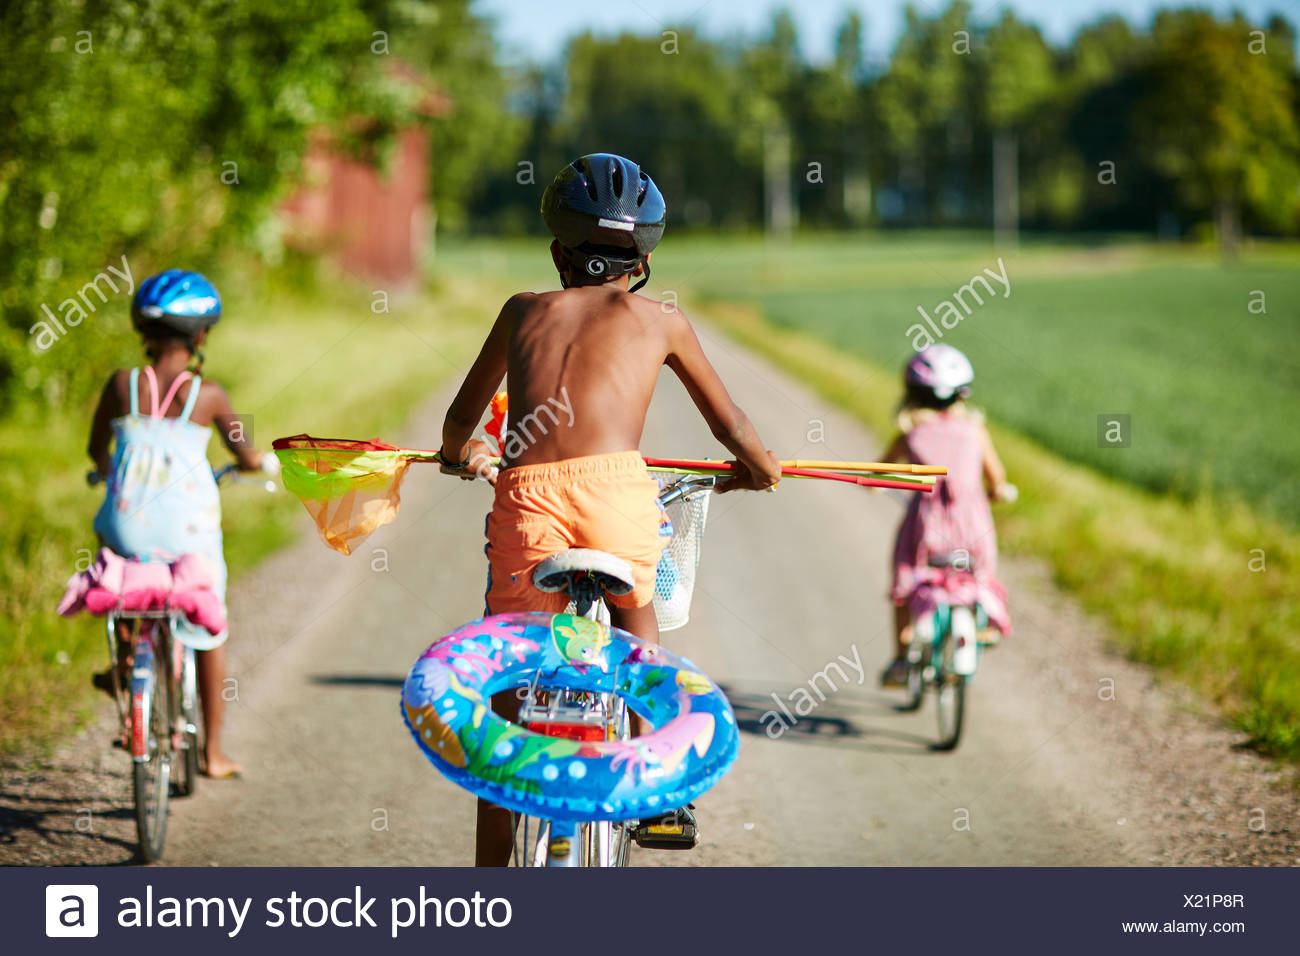 Children cycling on a rural road in Gullspang, Sweden - Stock Image